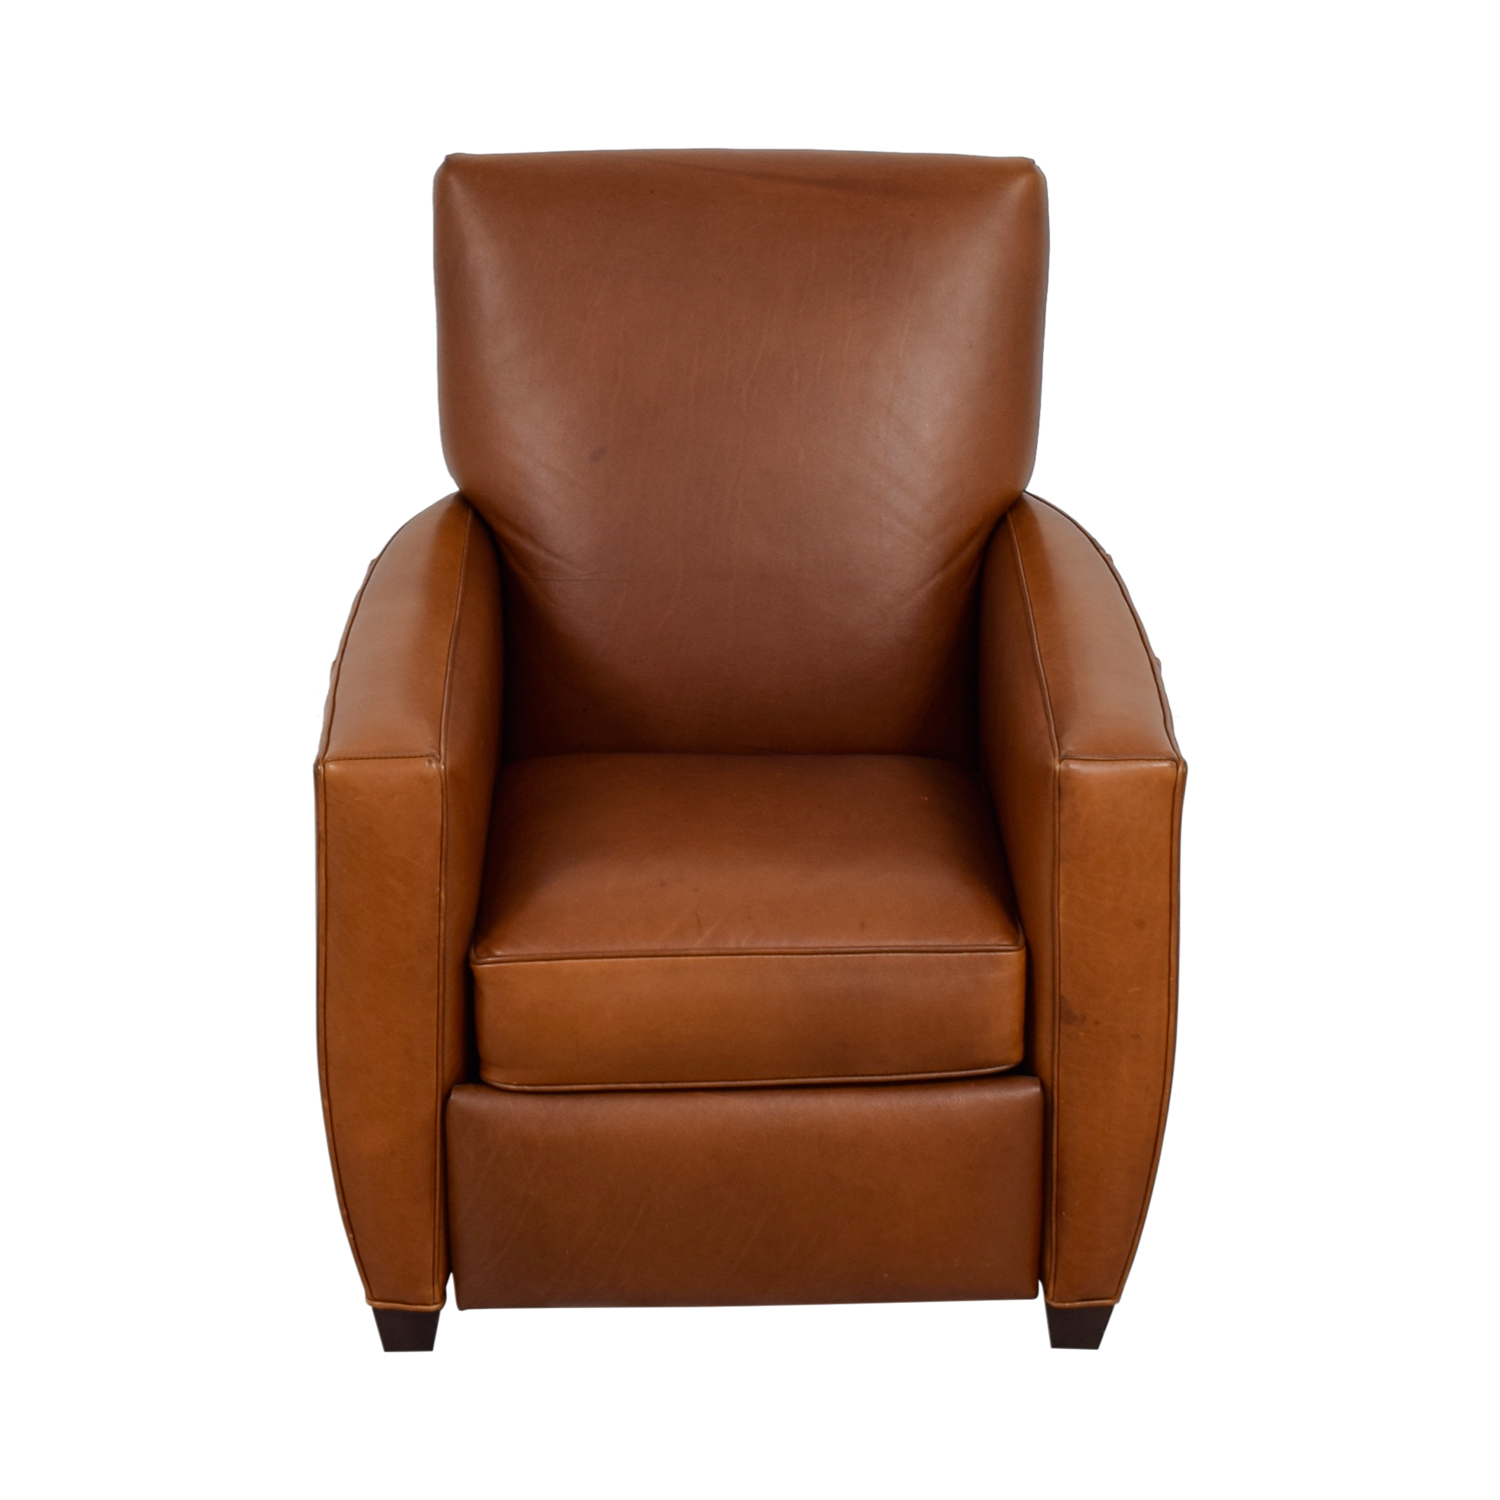 Crate & Barrel Crate & Barrel Streeter Cashew Leather Recliner for sale